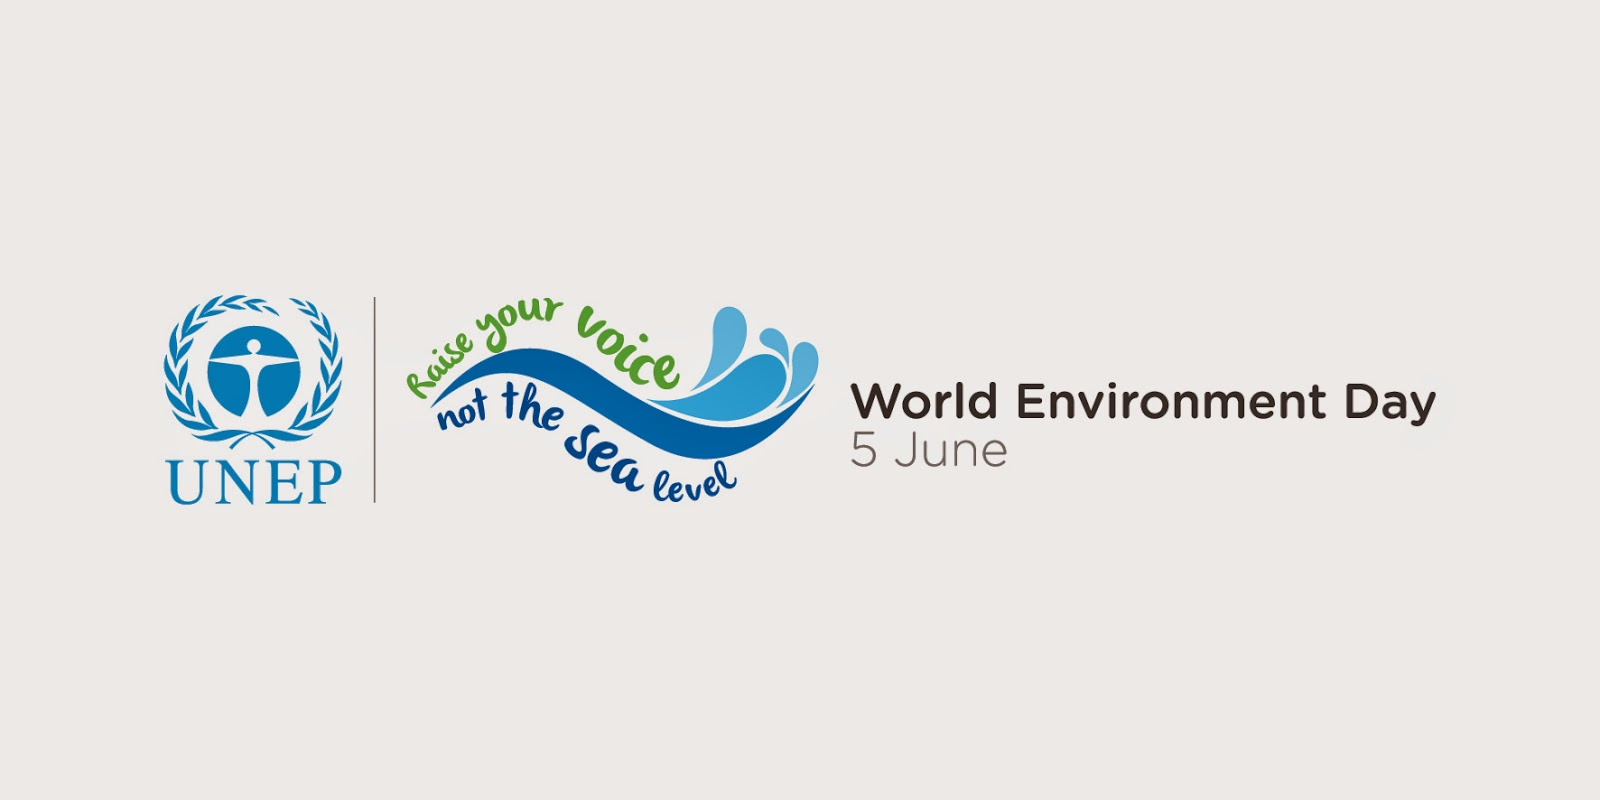 http://www.unep.org/wed/